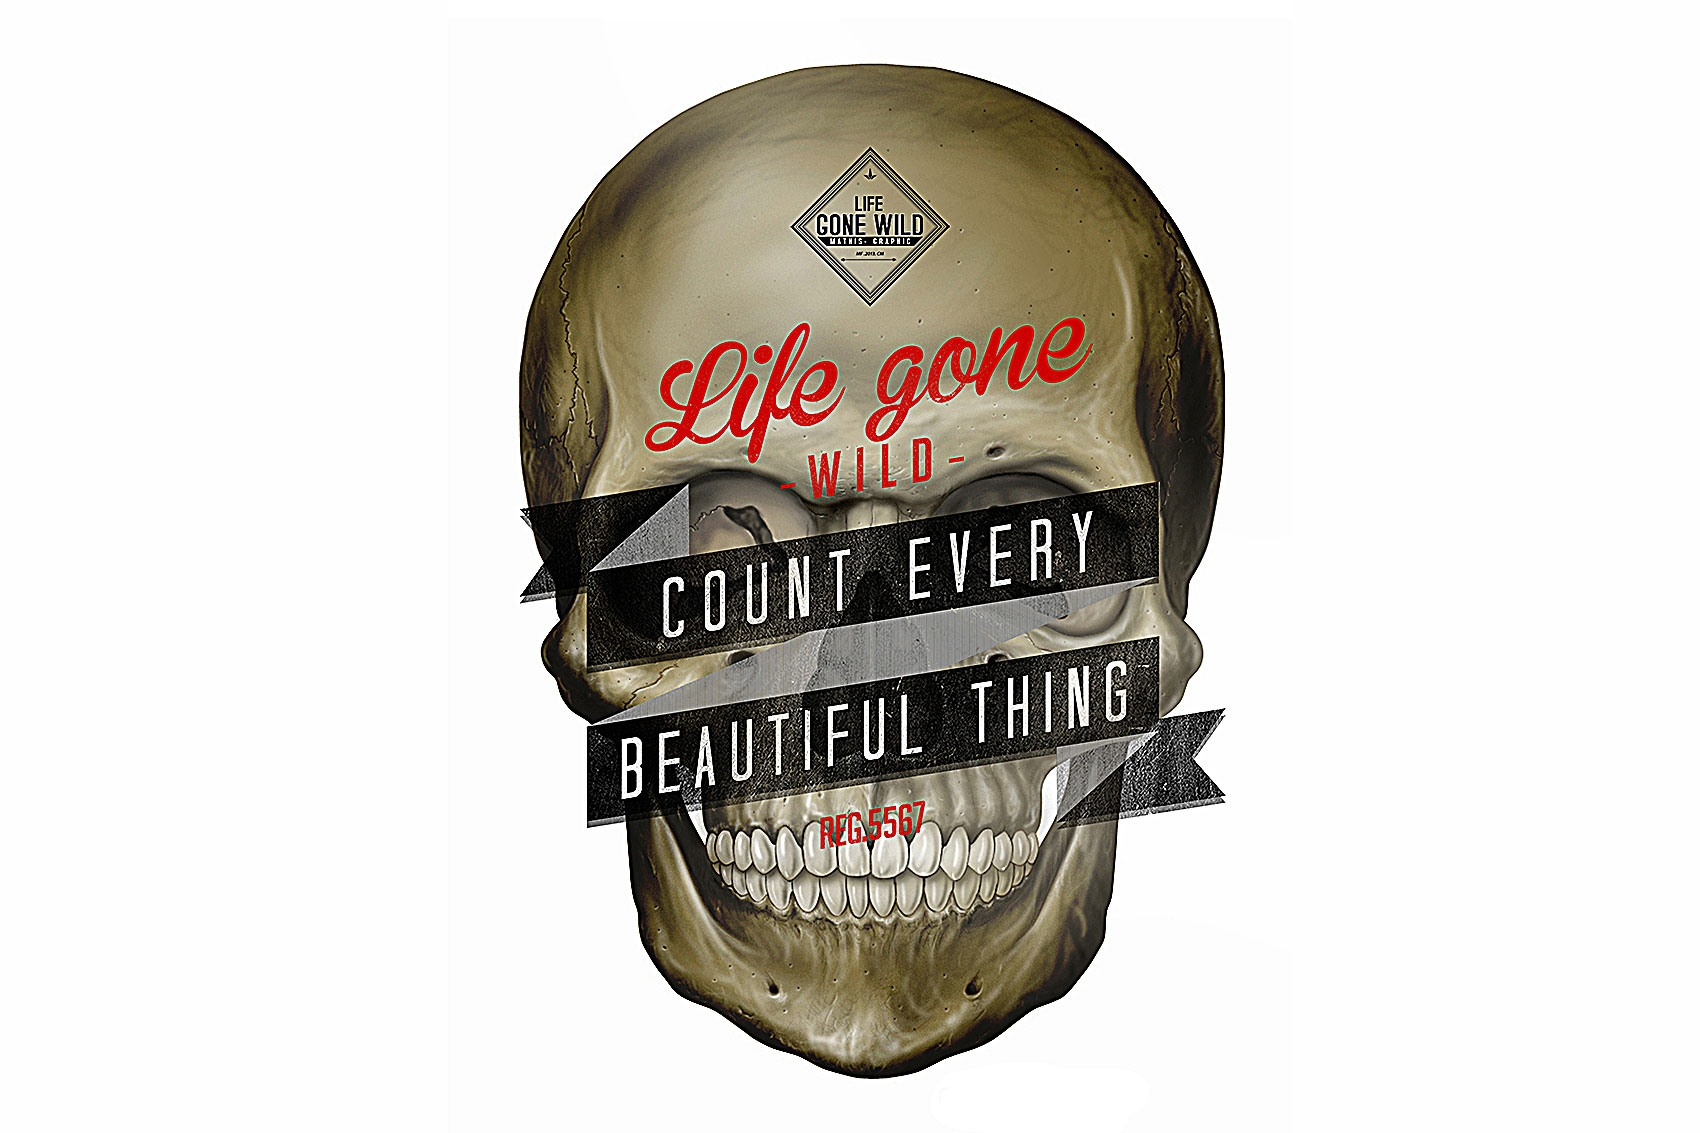 Illustration crane de la marque Life Gone Wild